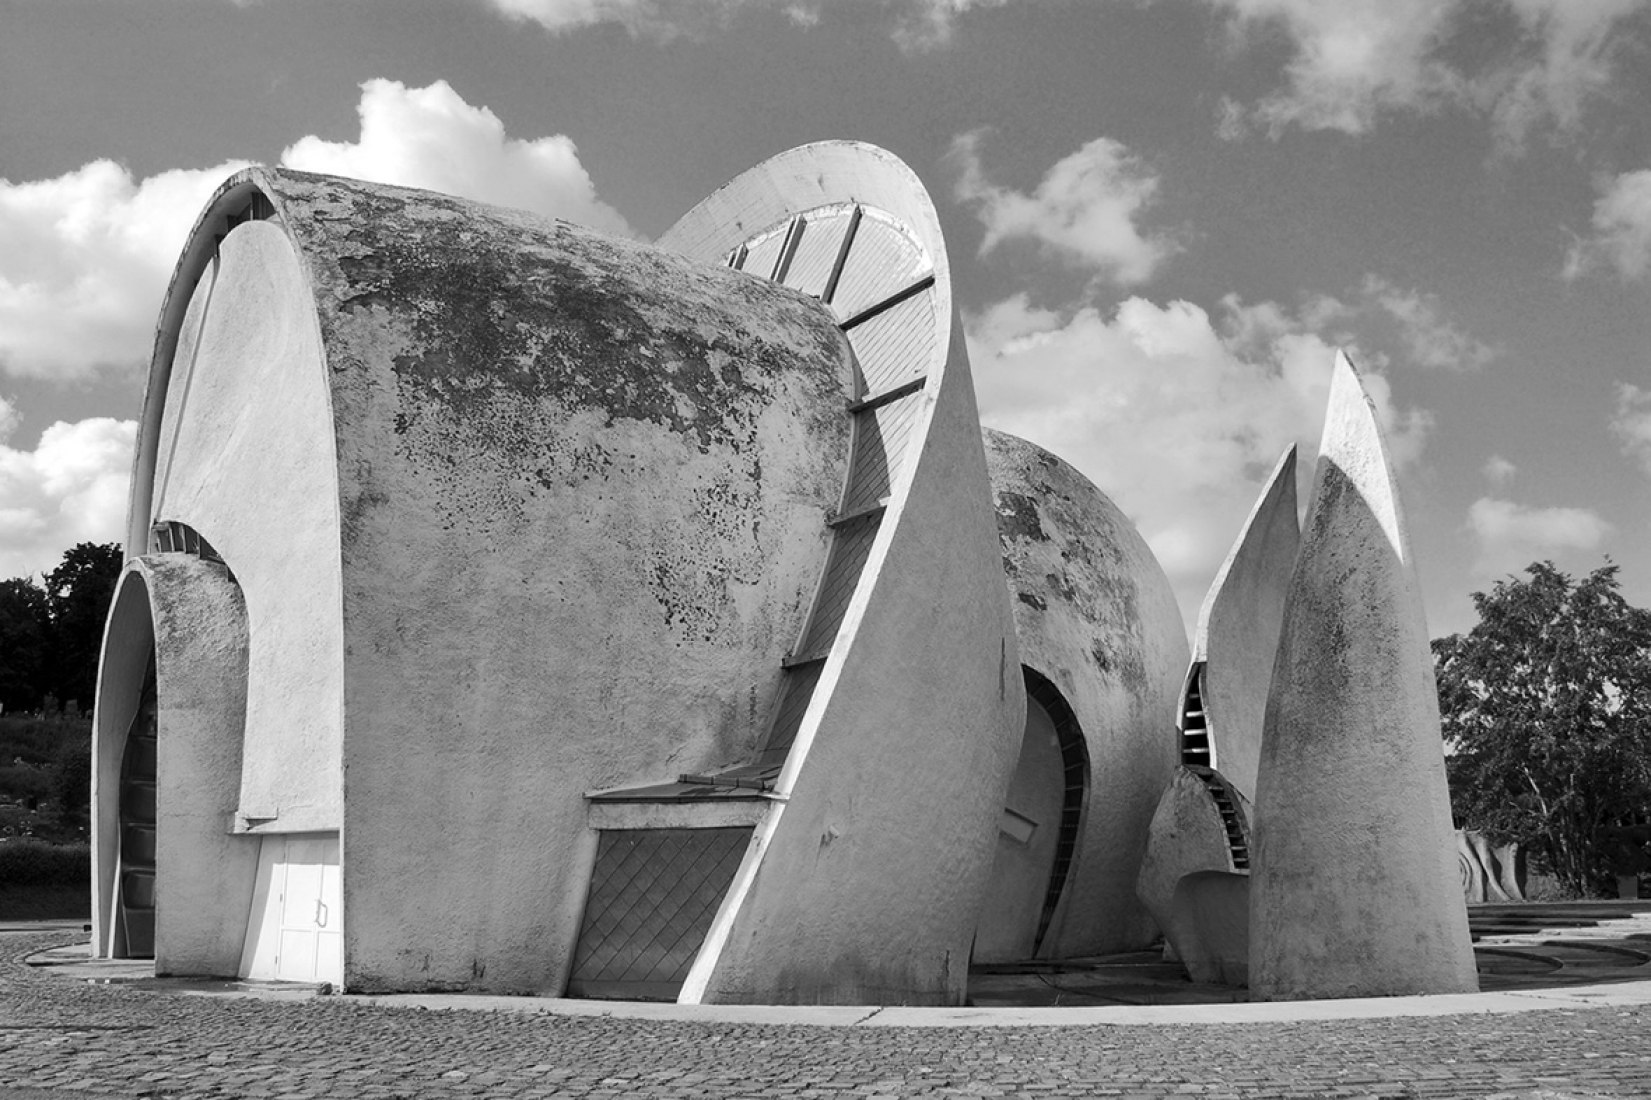 Park of Memory (Crematorium) by A. Miletskyi, V. Melnichenko and A. Rybachuk. Image courtesy of Garage Museum of Contemporary Art.